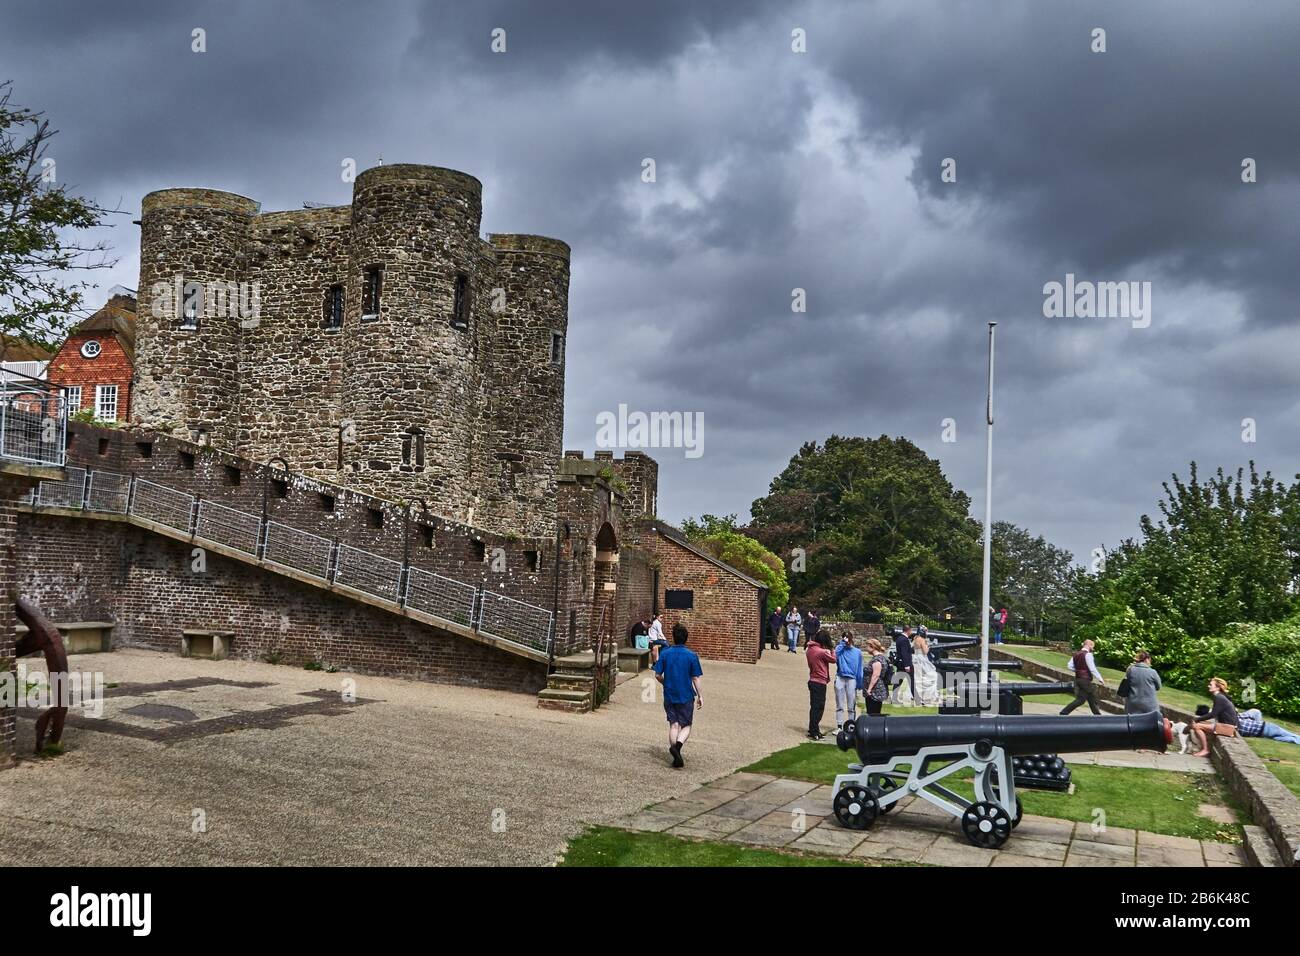 Rye is un old Norman town, UK, District Rother, county East Sussex, England  The Ypres Tower was built in 1249 to defend Rye against attacks from across the channel. It has served as a fort, private dwelling, prison, court hall and now finally as a museum Stock Photo